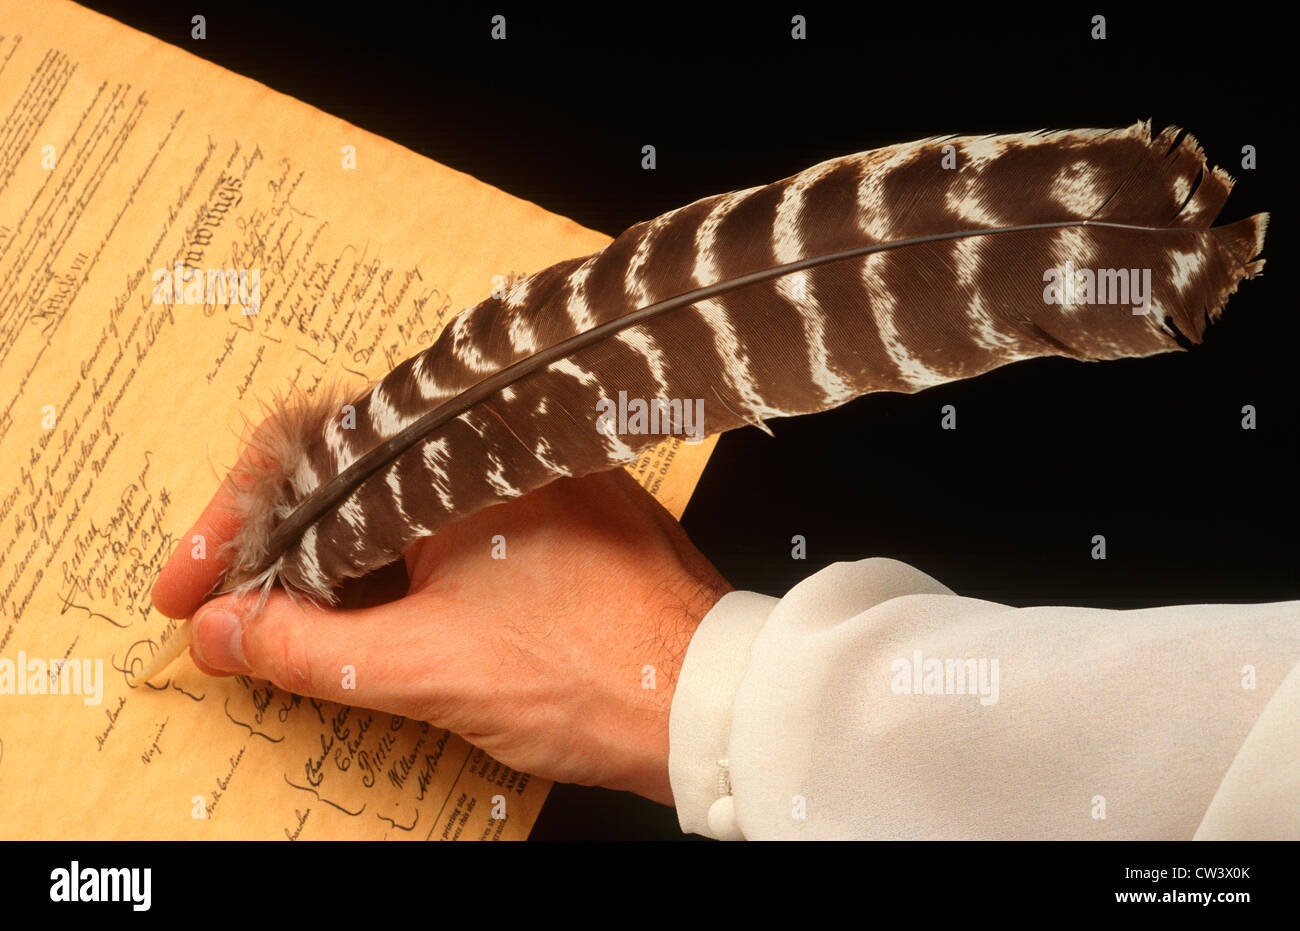 Hand holding quill pen signing U.S. Constitution - Stock Image